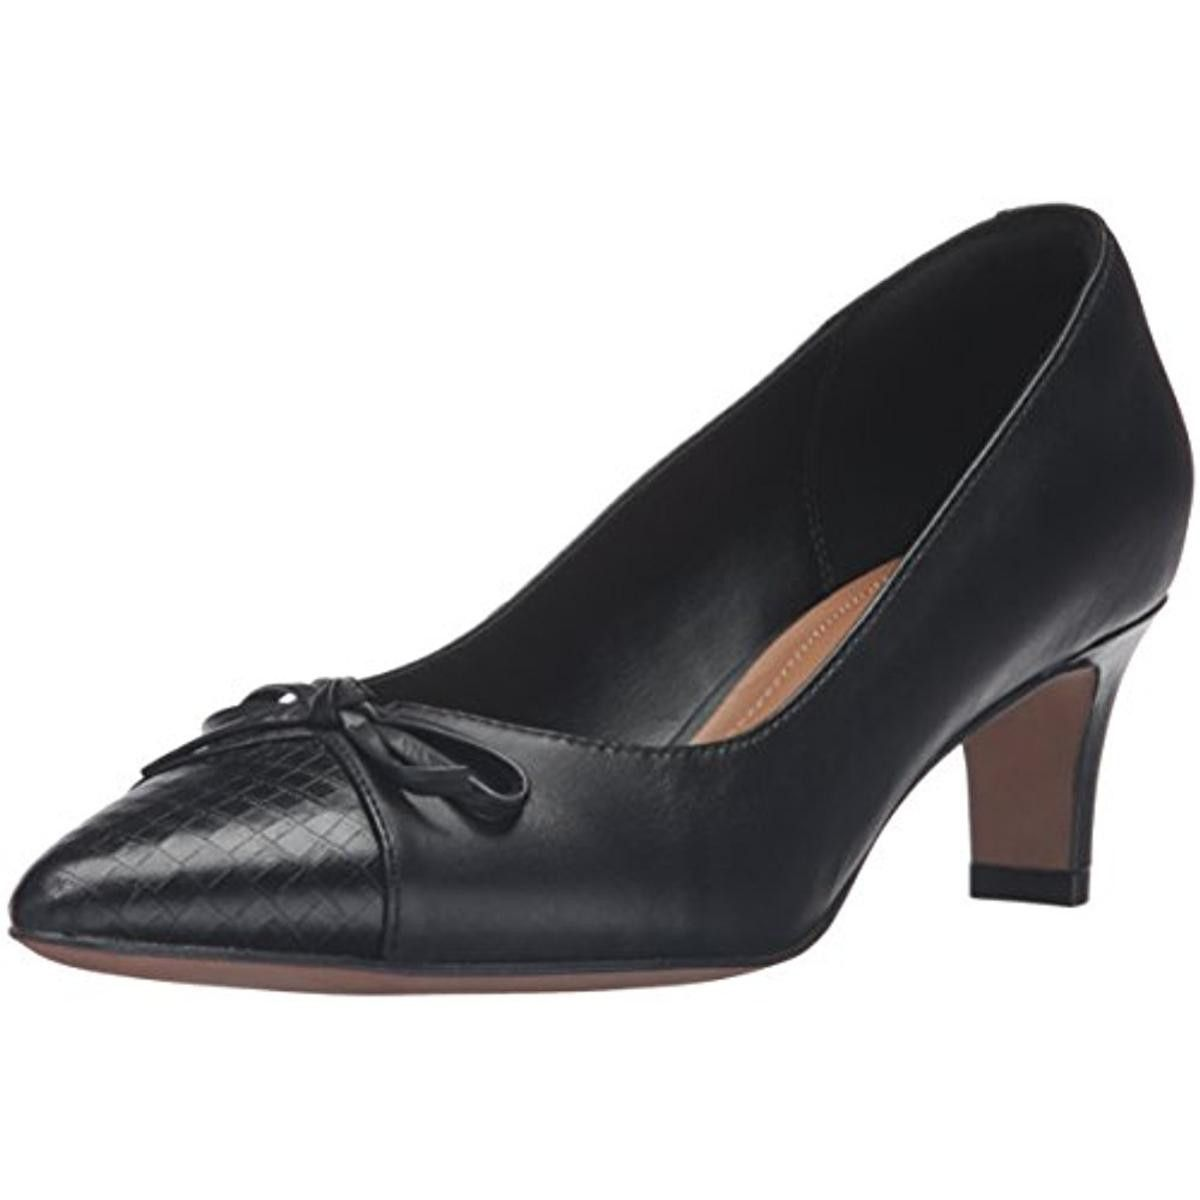 Clarks Womens Crewso Calica Leather Pointed Toe Pumps